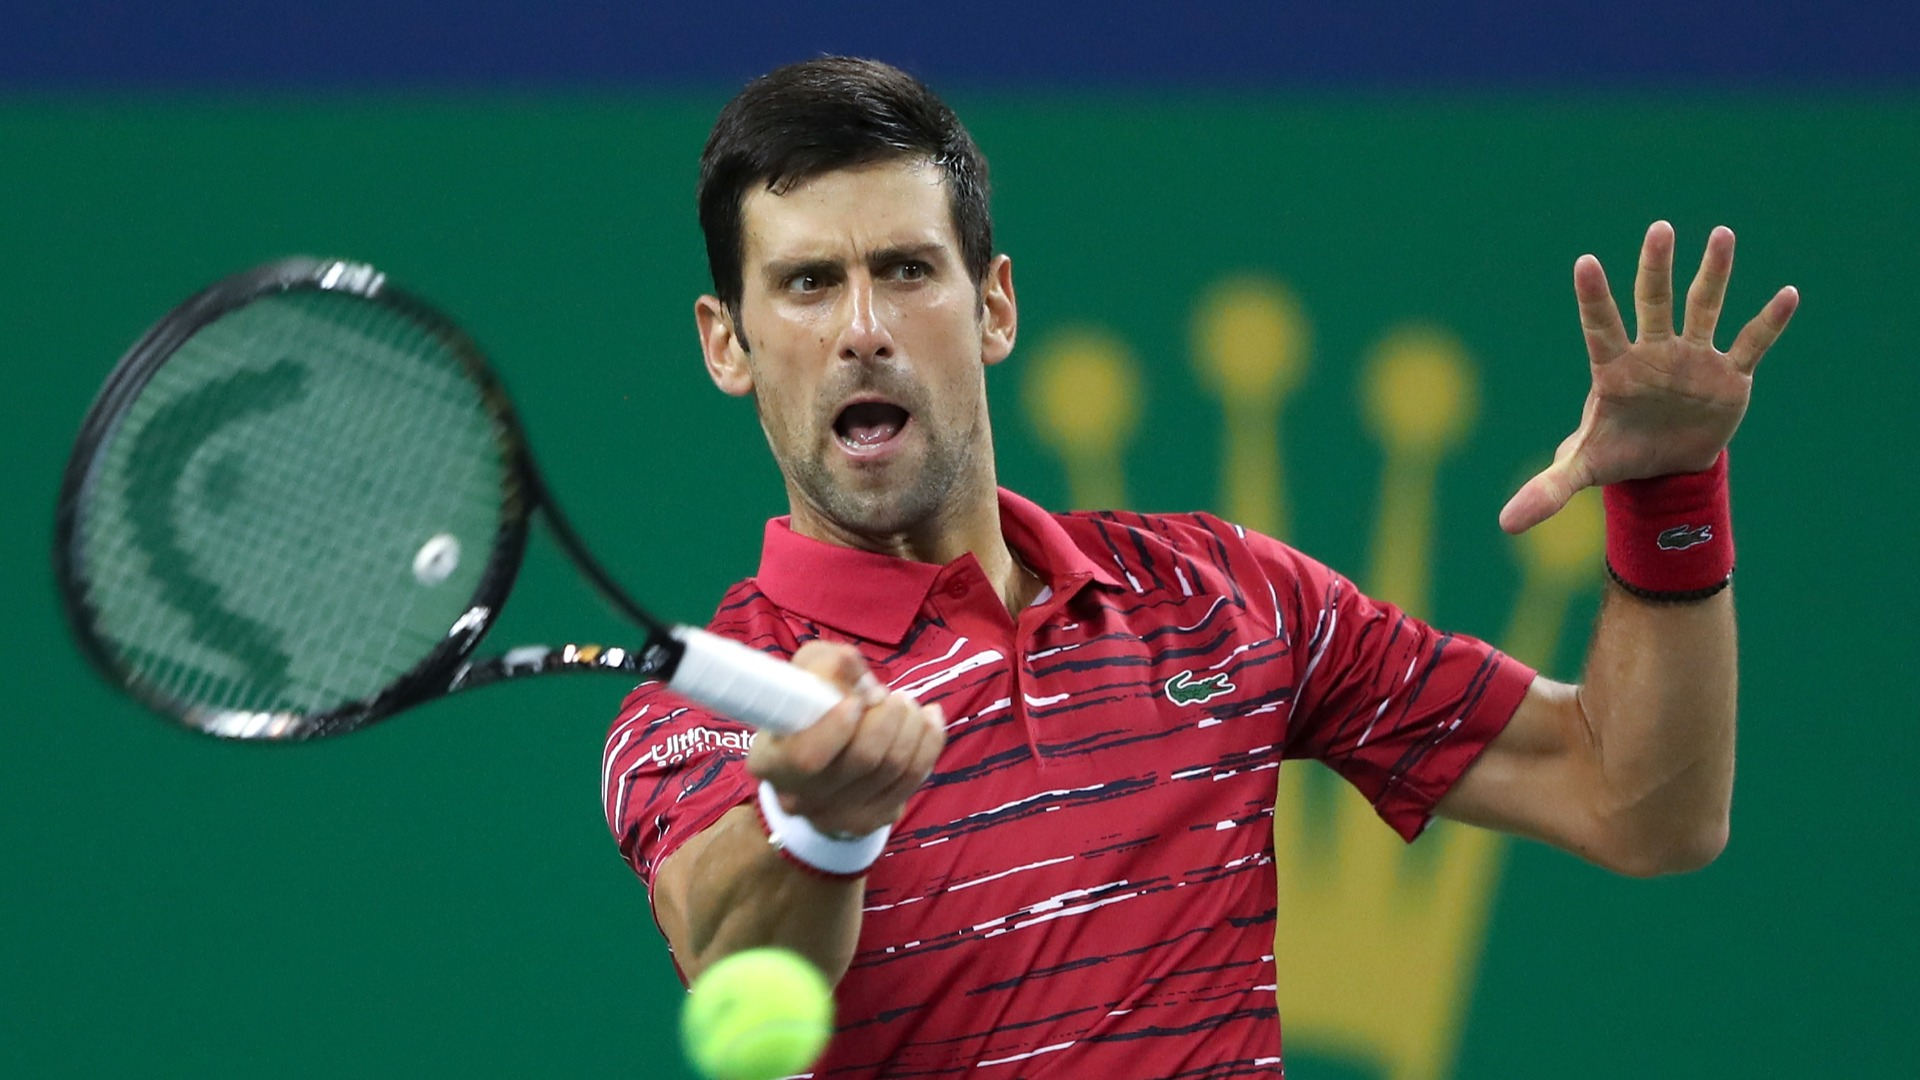 Novak Djokovic and Roger Federer face tough tests next after reaching the Shanghai Masters quarter-finals.